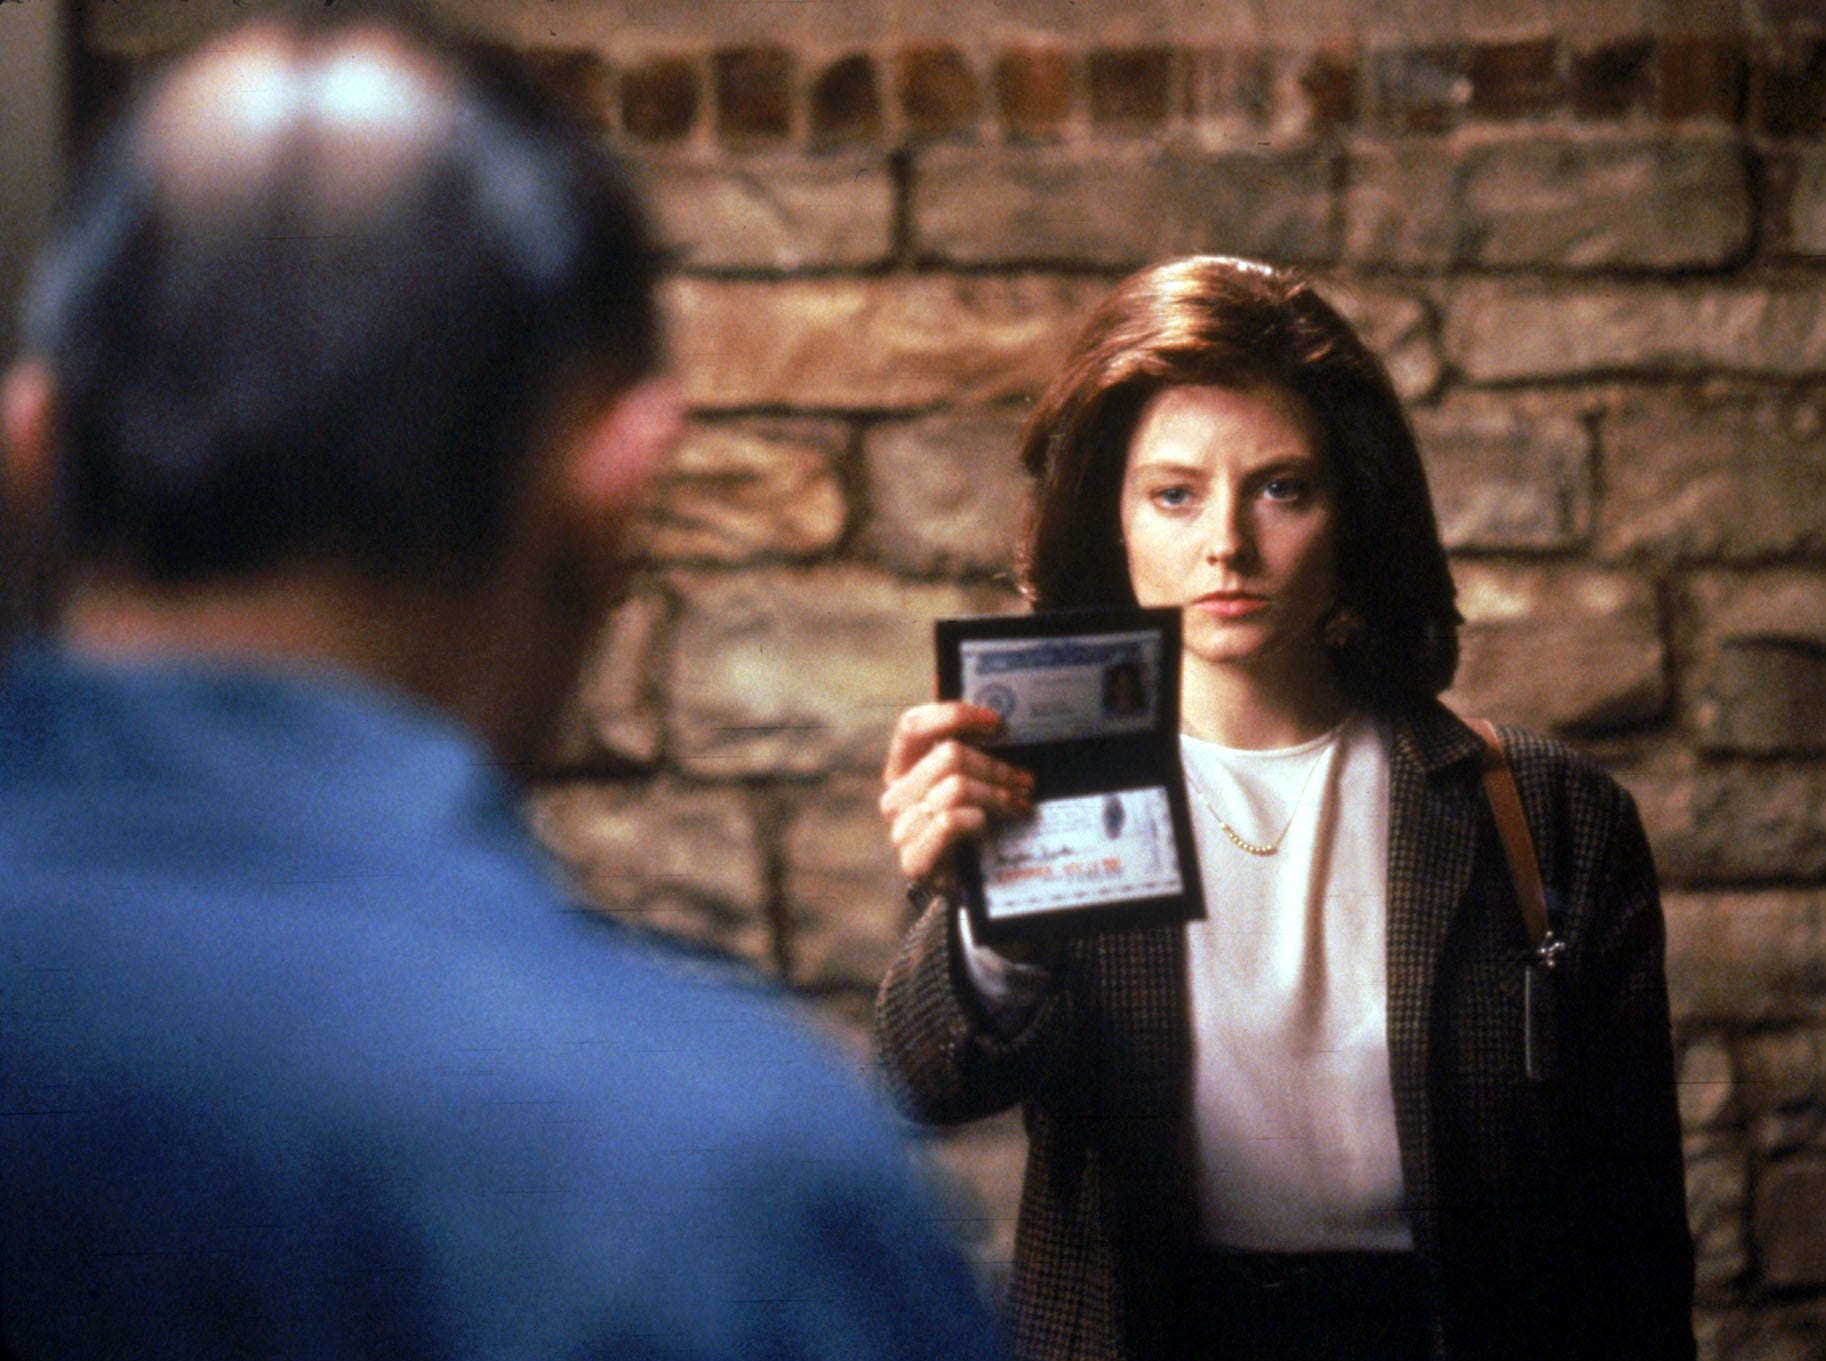 Anthony Hopkins, back to camera, and Jodie Foster in a scene from the 1991 motion picture The Silence of the Lambs.